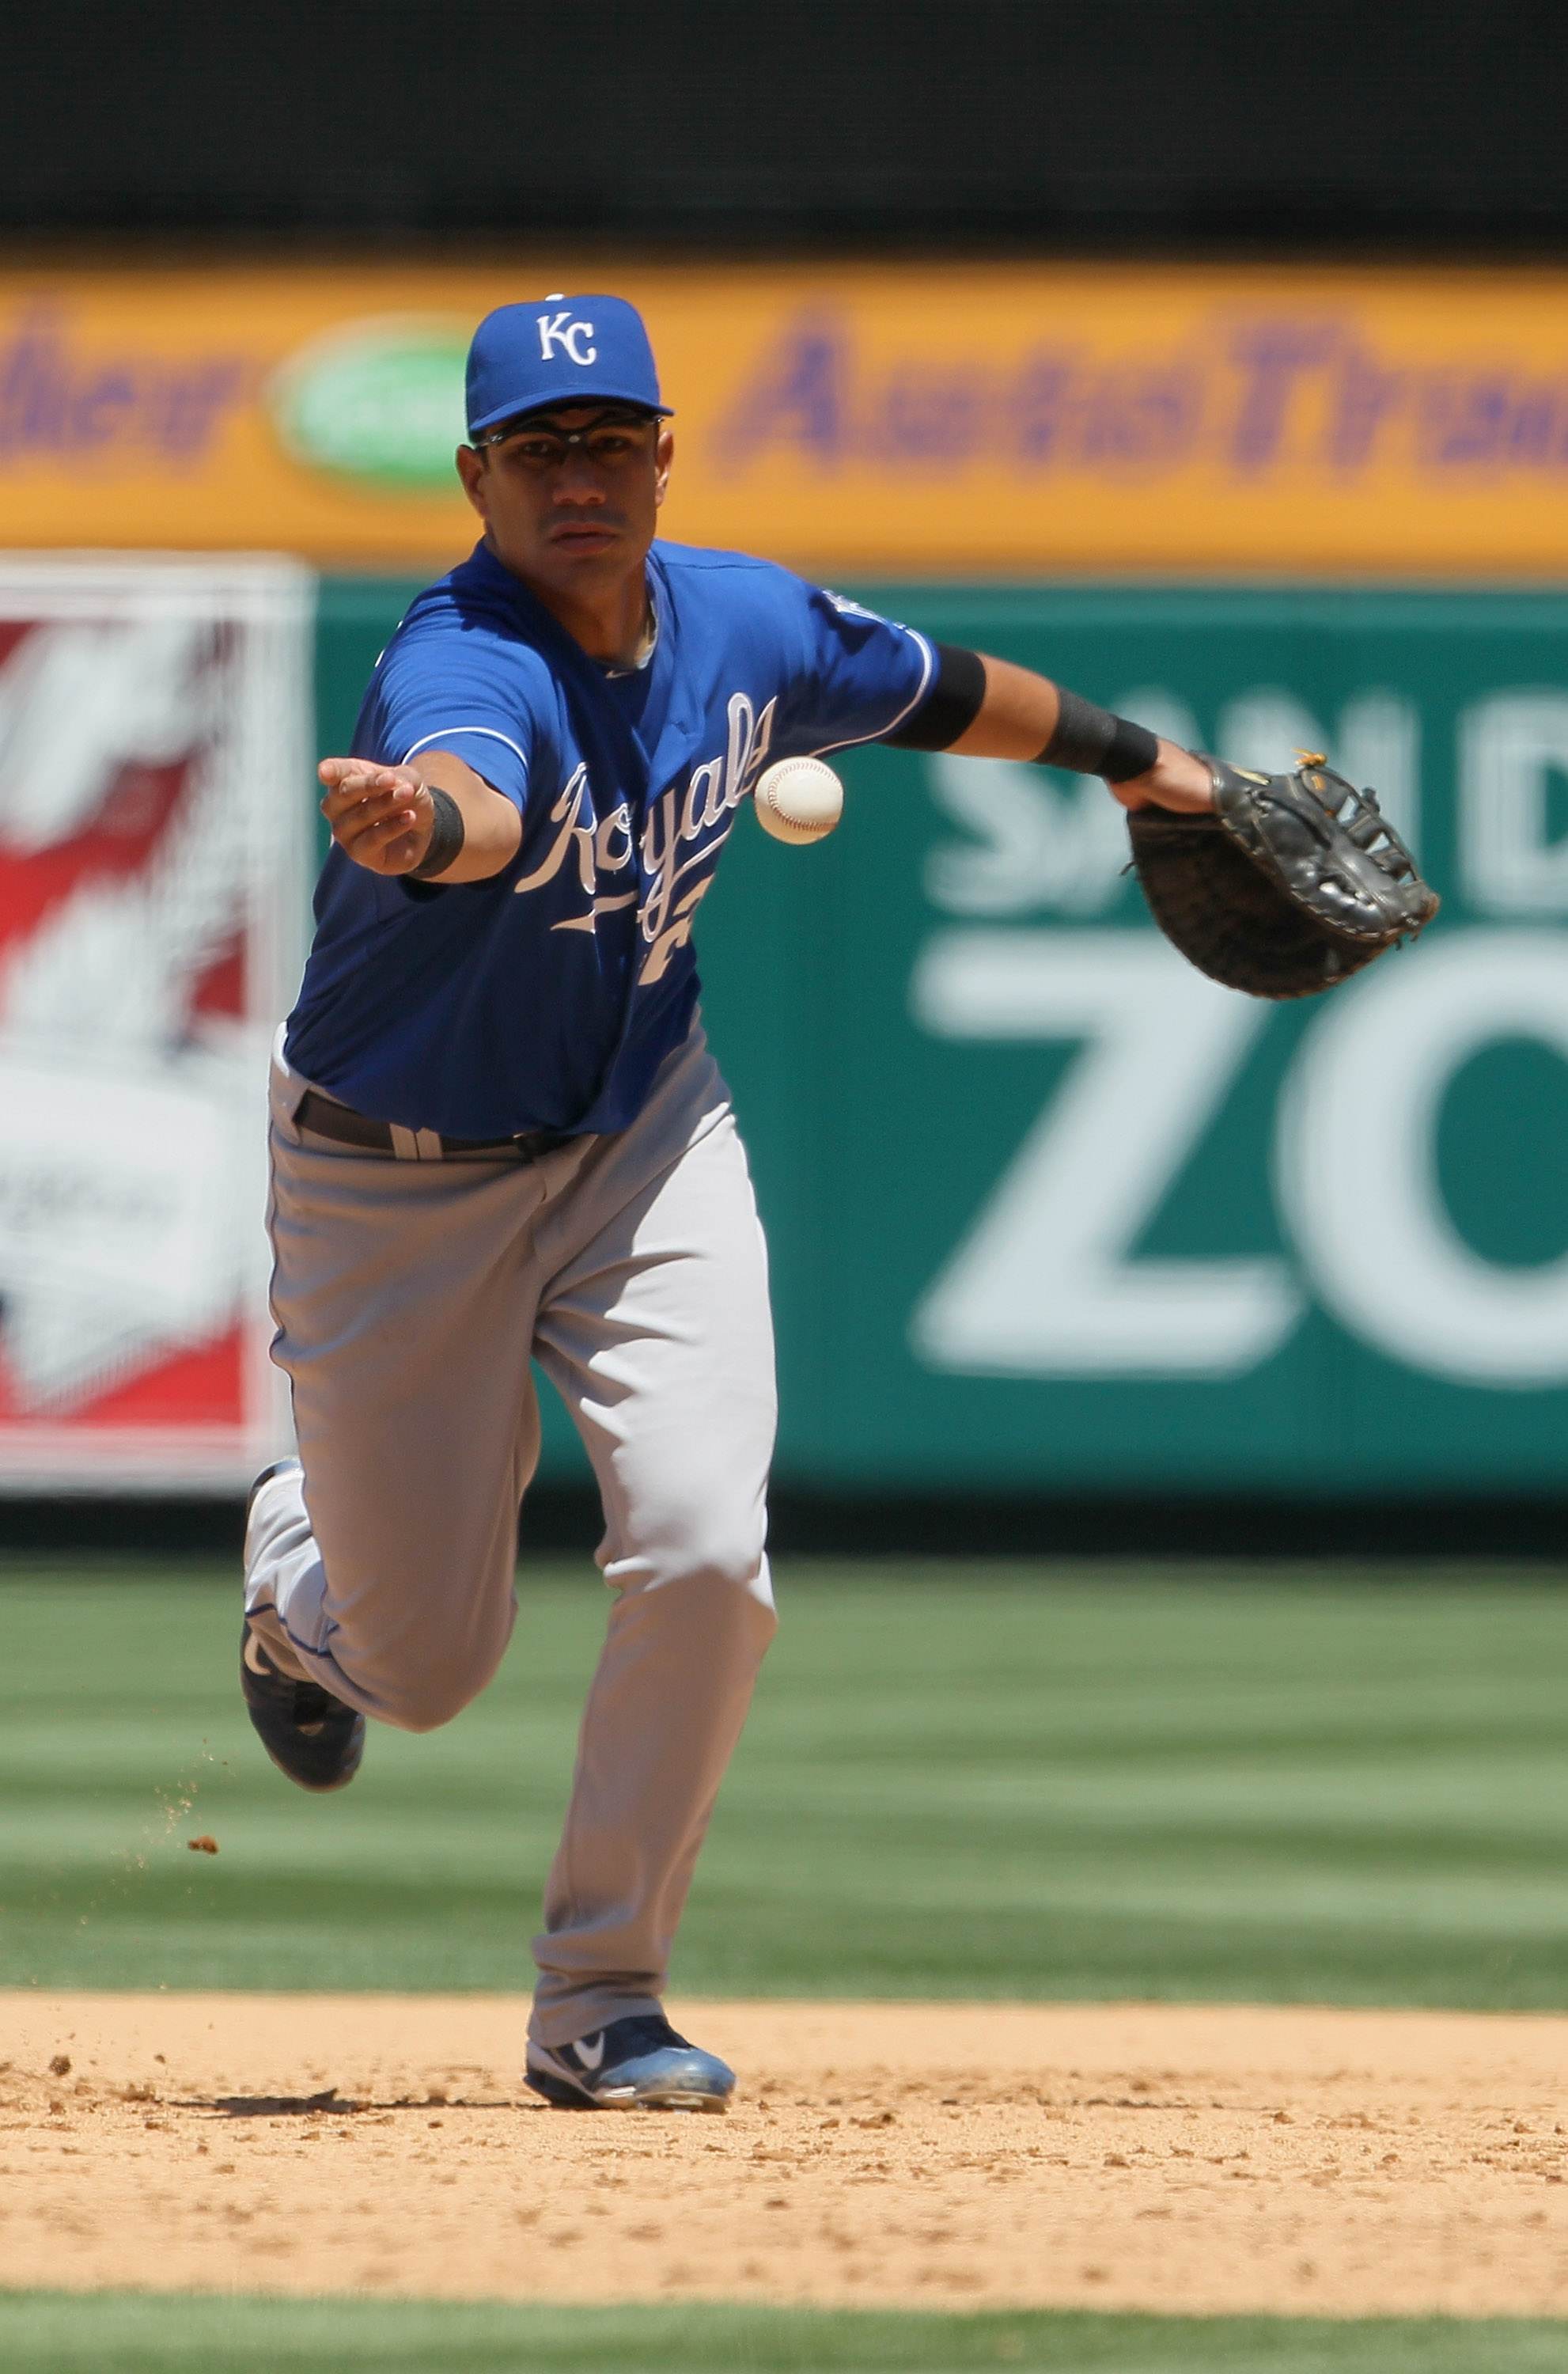 ANAHEIM, CA - AUGUST 11:  Kila Ka'aihue #25 of the Kansas City Royals tosses the ball to first base against the Los Angeles Angels of Anaheim at Angel Stadium on August 11, 2010 in Anaheim, California.  (Photo by Jeff Gross/Getty Images)